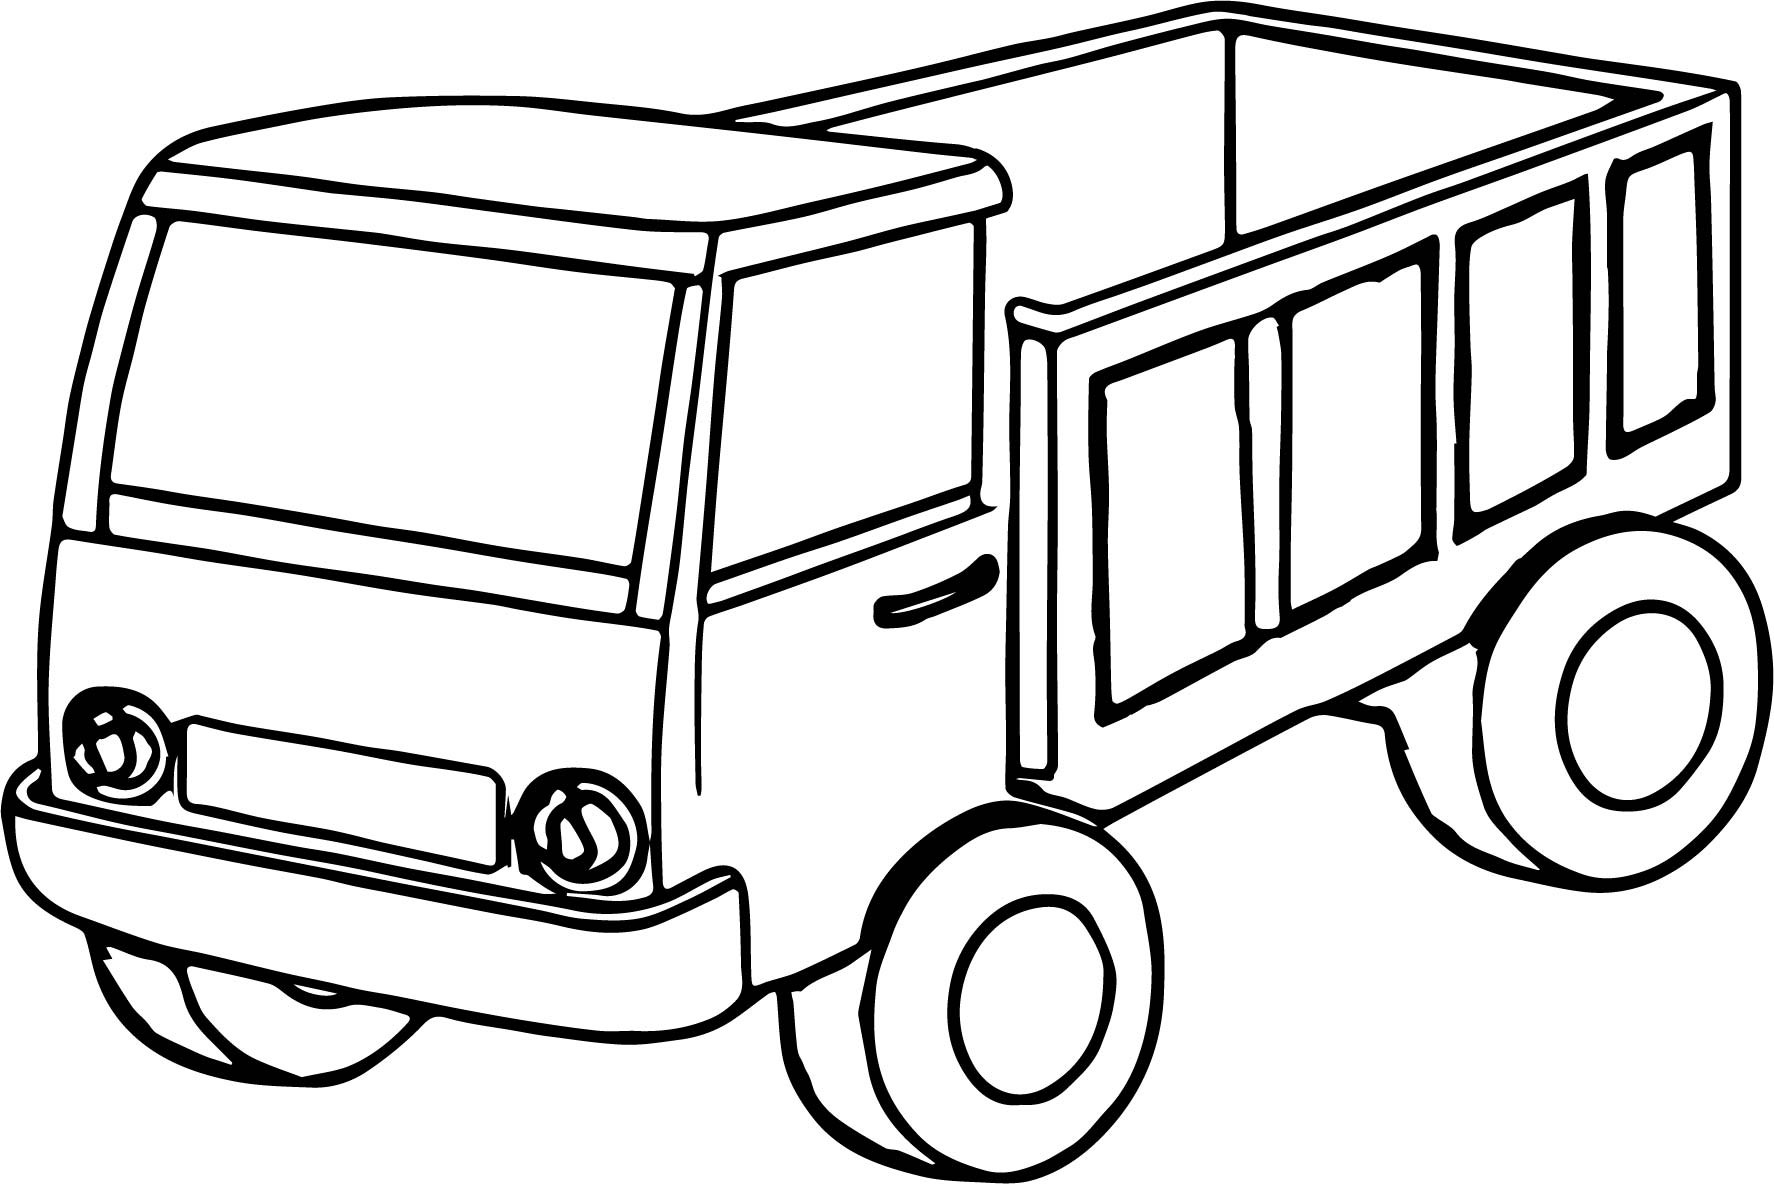 Ford Truck Drawing at GetDrawings.com | Free for personal use Ford ...